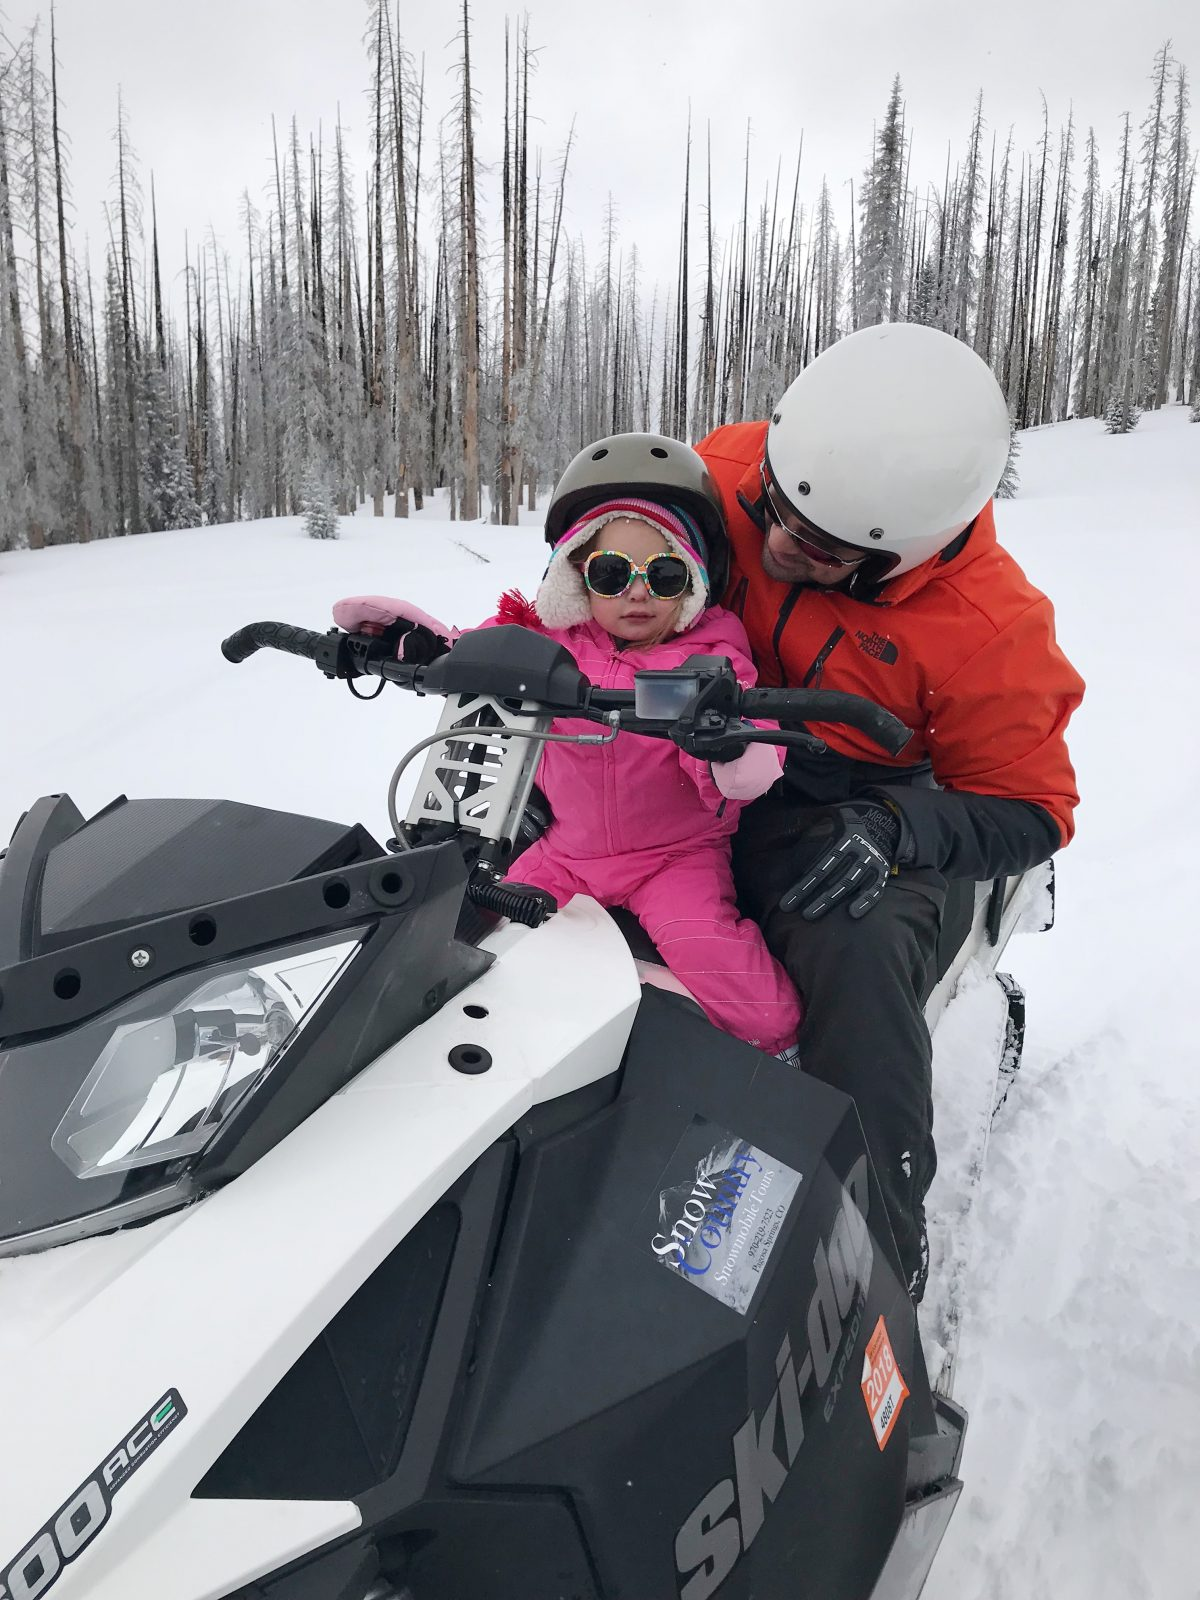 Family ski trip with a toddler - snowmobiling